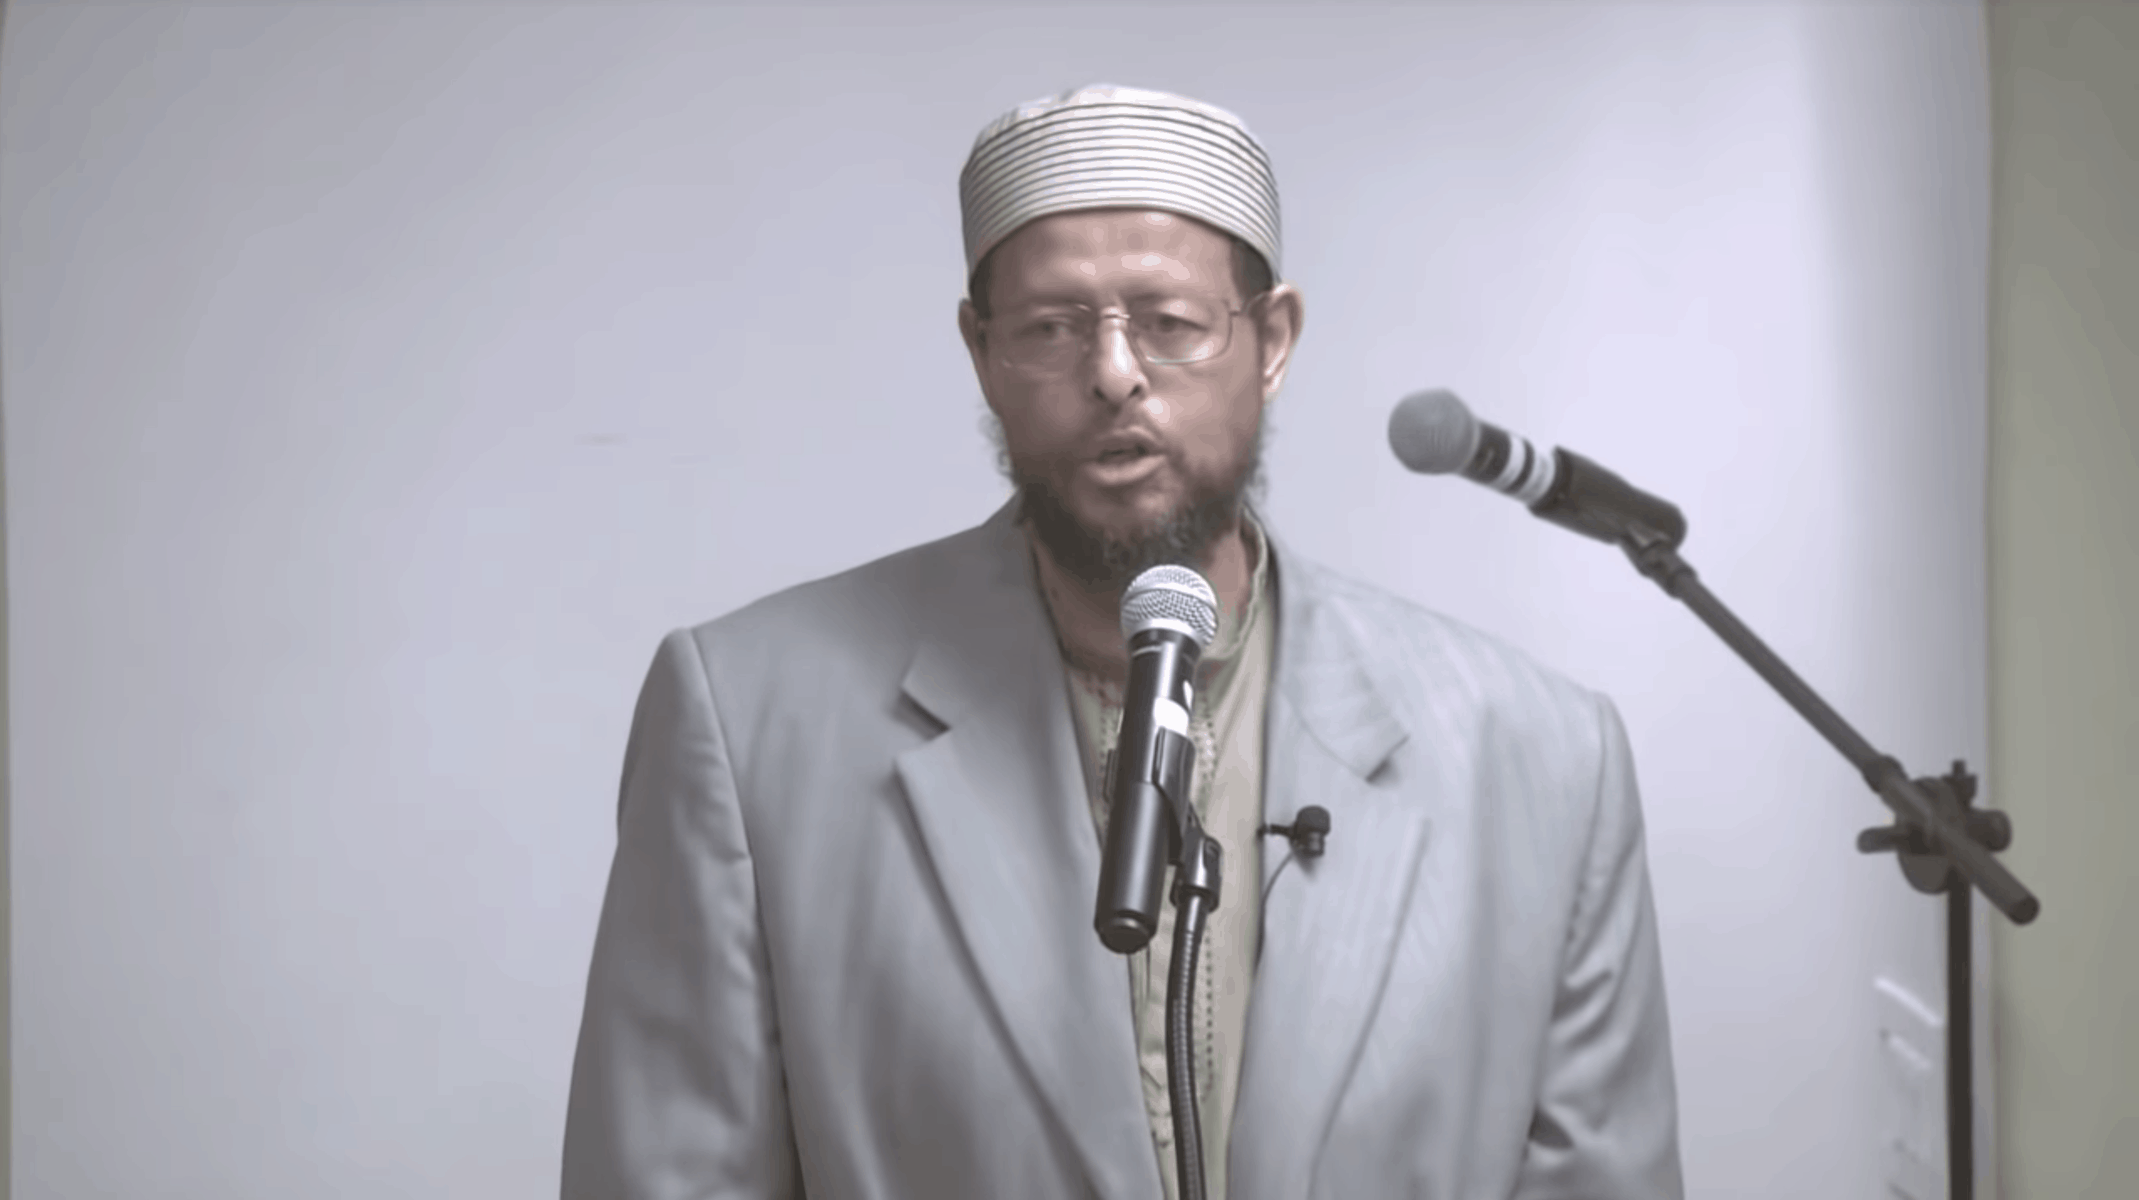 Zaid Shakir – The Prophet's Life As As Governor on Our Actions